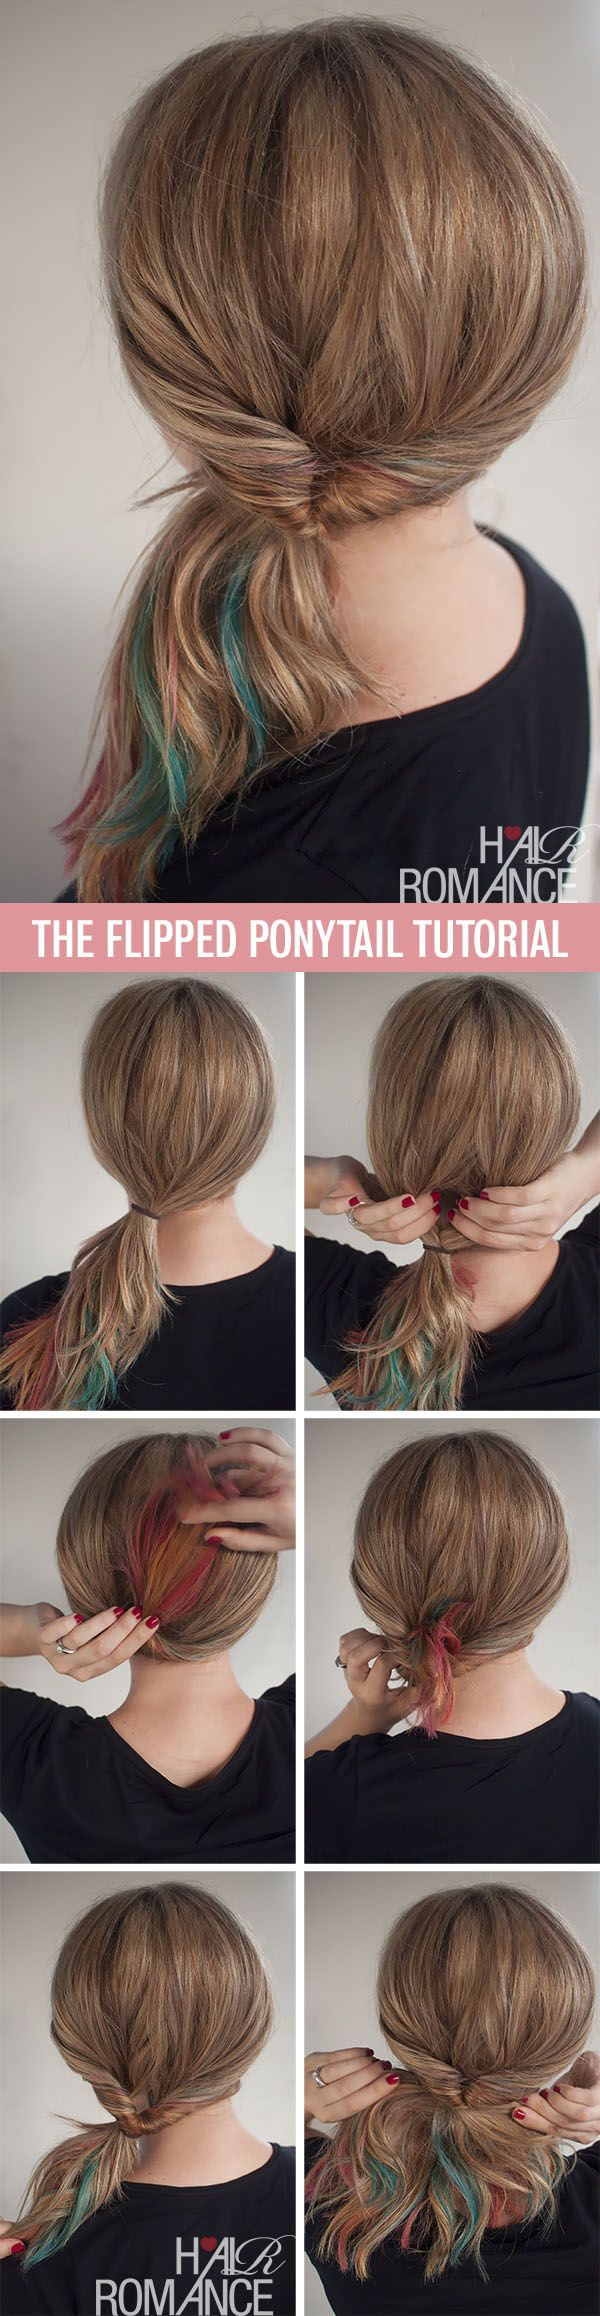 Hair Romance - 1 minute flipped ponytail tutorial